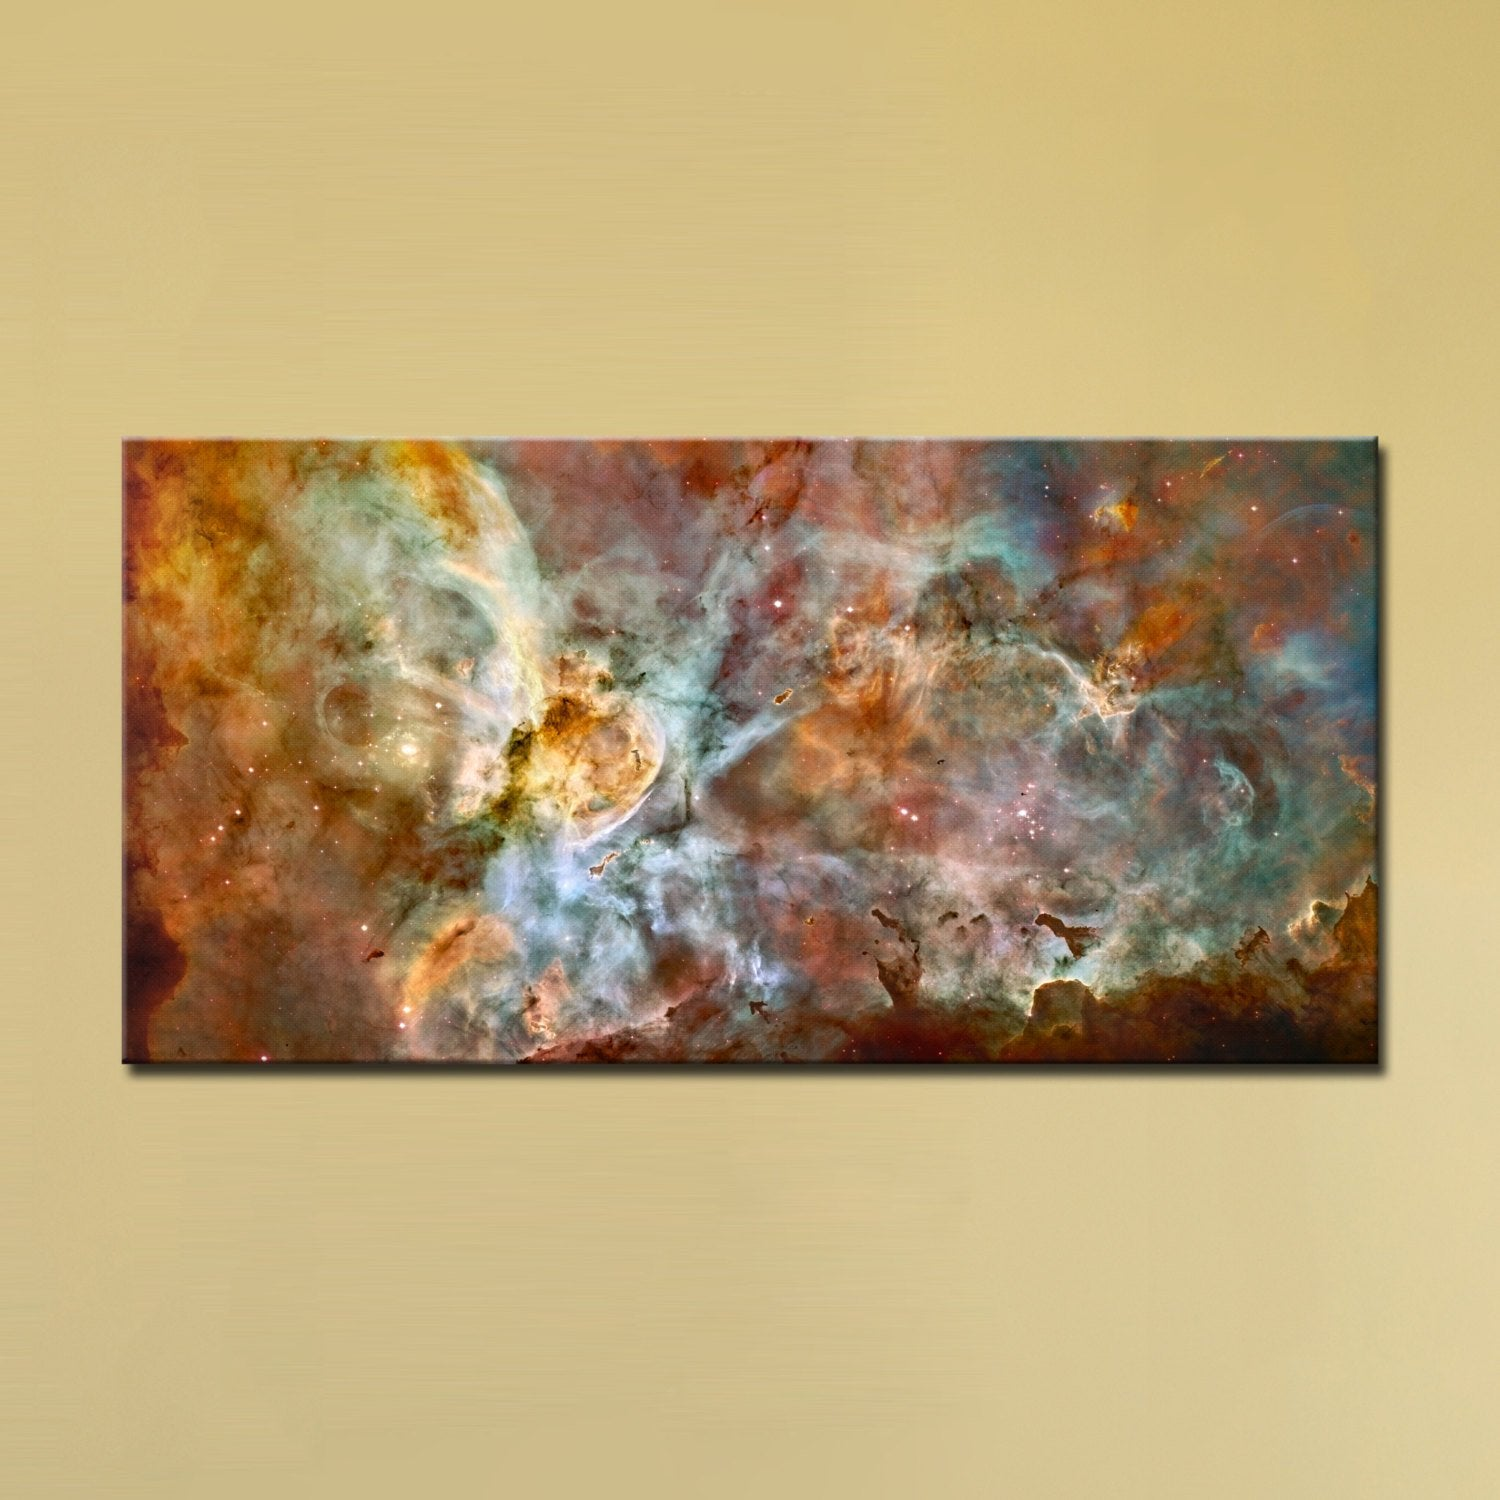 "The Carina Nebula, Star Birth in the Extreme (Color) (16"" x 24"") - Canvas Wrap Print"